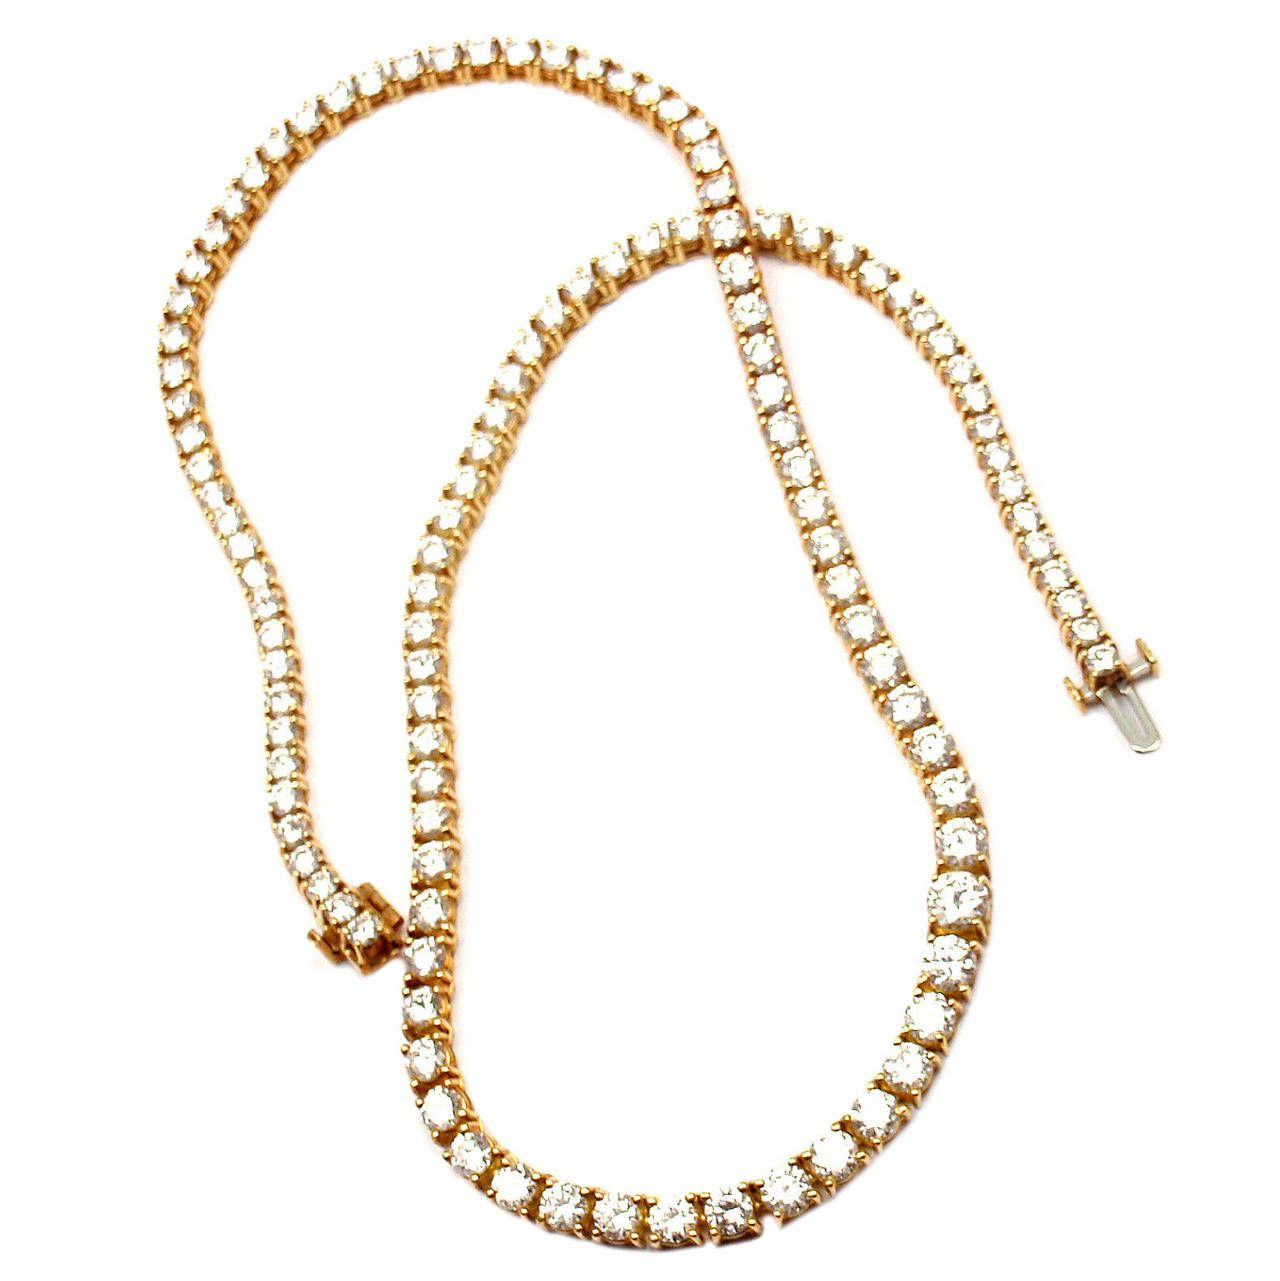 Tiffany and Co. 12.38 Carat Diamond Gold Tennis Necklace